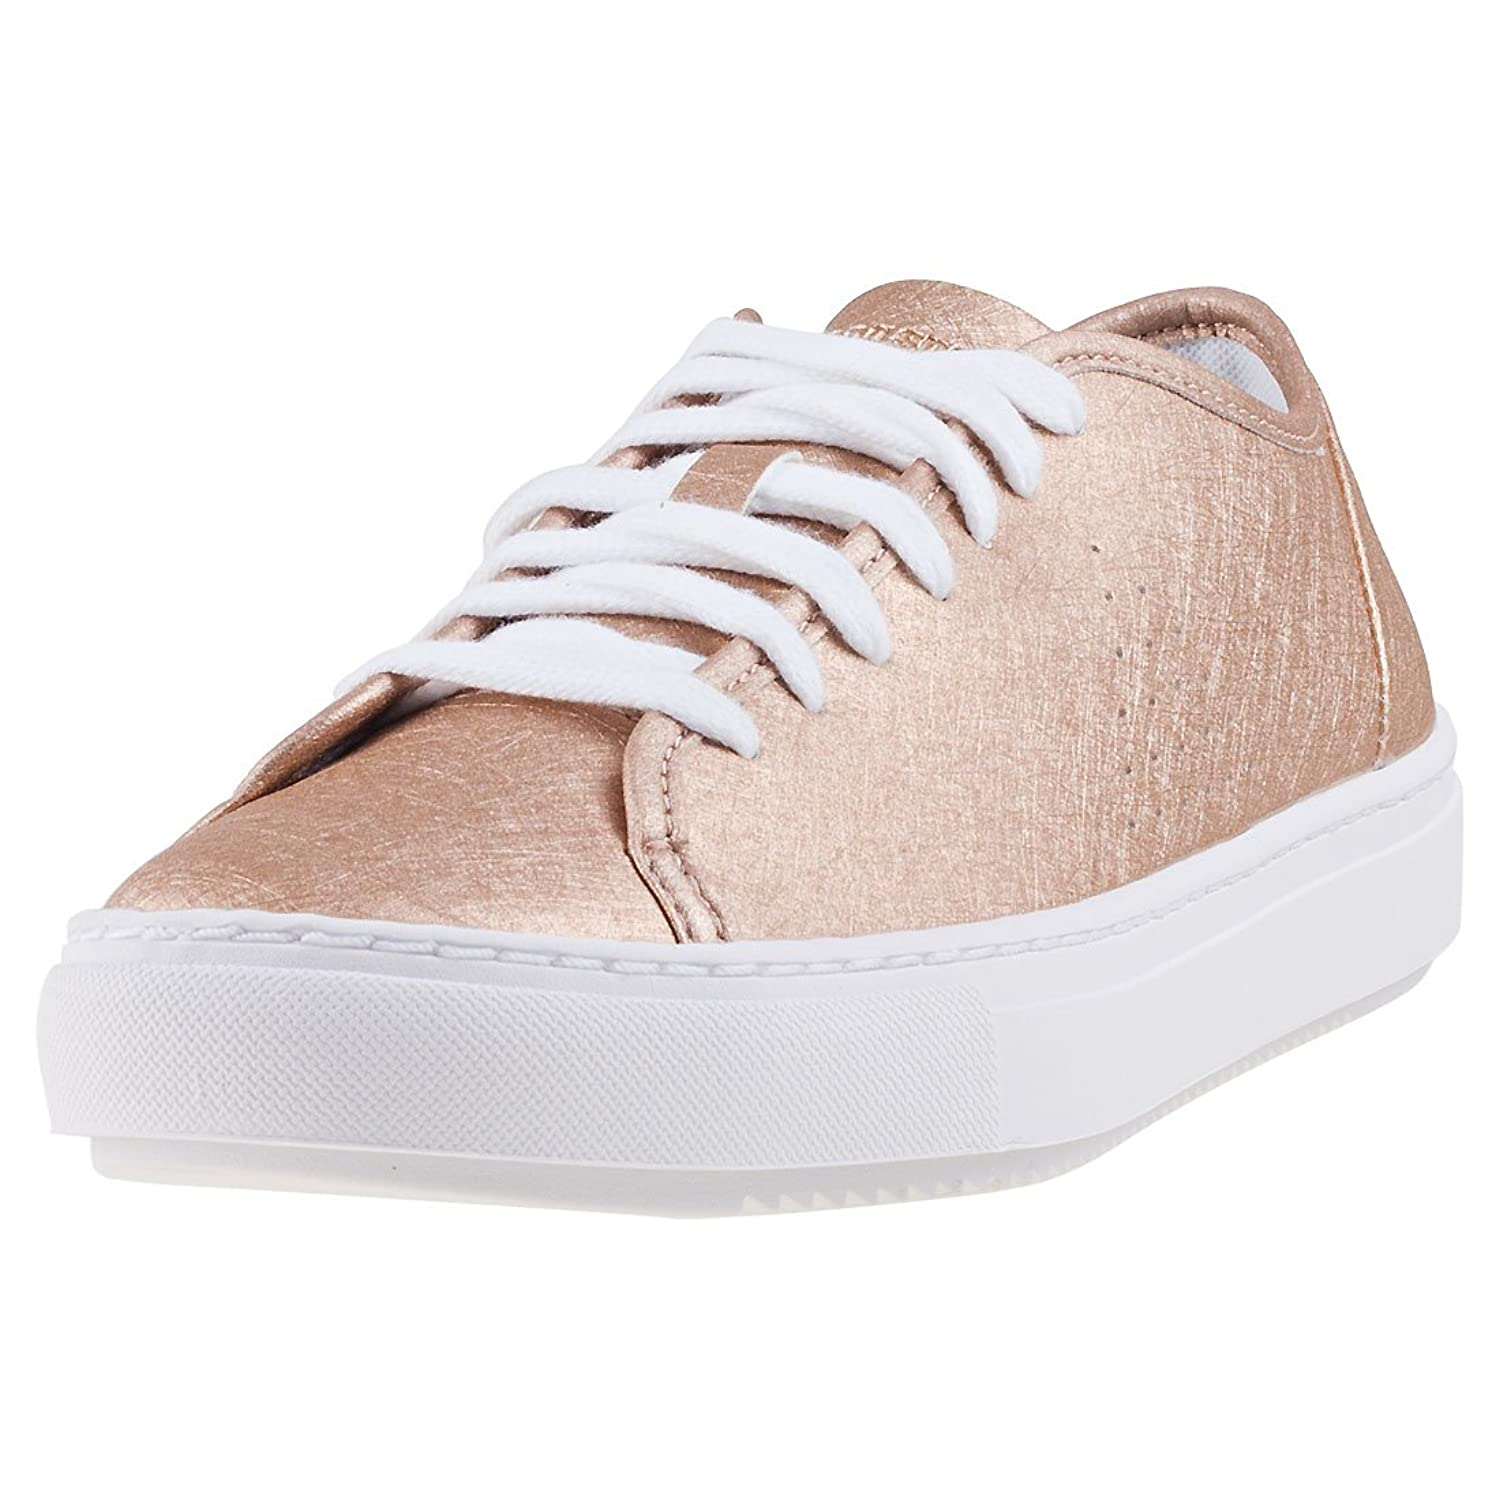 Le Coq Sportif Jane Metallic Rose Gold 1810331 37 EU